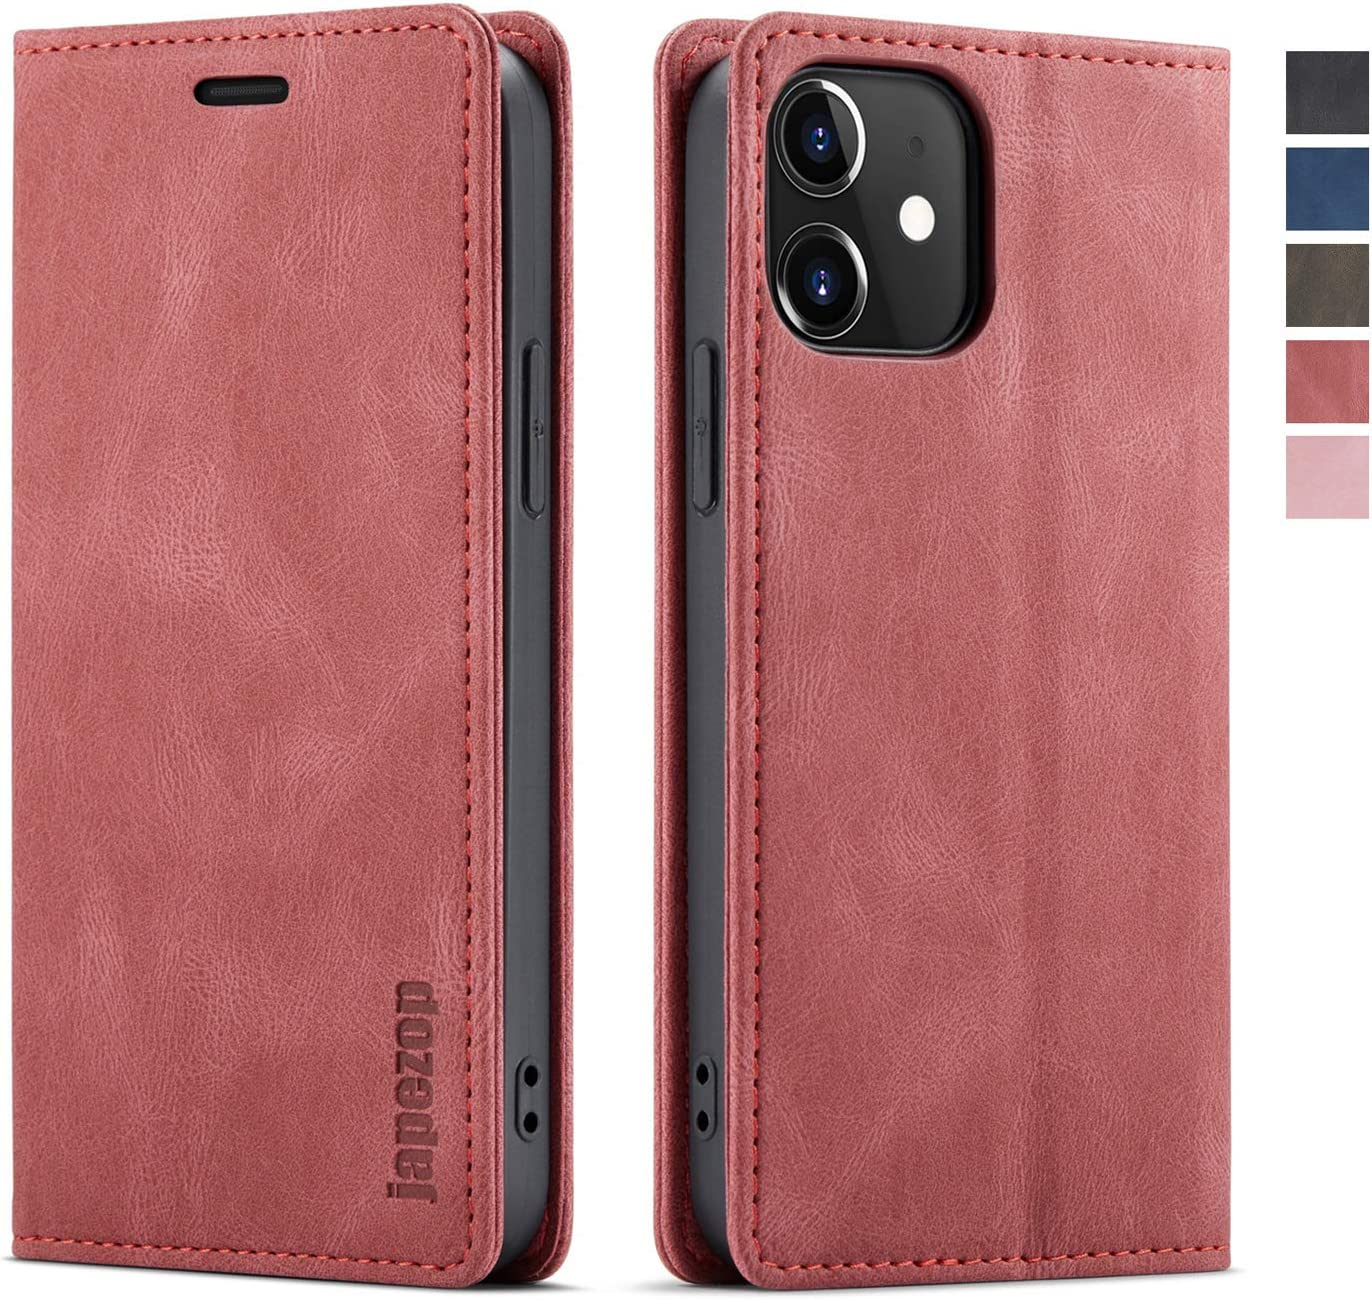 japezop iPhone 12 Mini Case, iPhone 12 Mini Wallet Case for Women with [RFID Blocking] Credit Card Holder, Leather Flip Book Phone Case Cover for for iPhone 12 Mini 5.4 Inch(Wine Red)